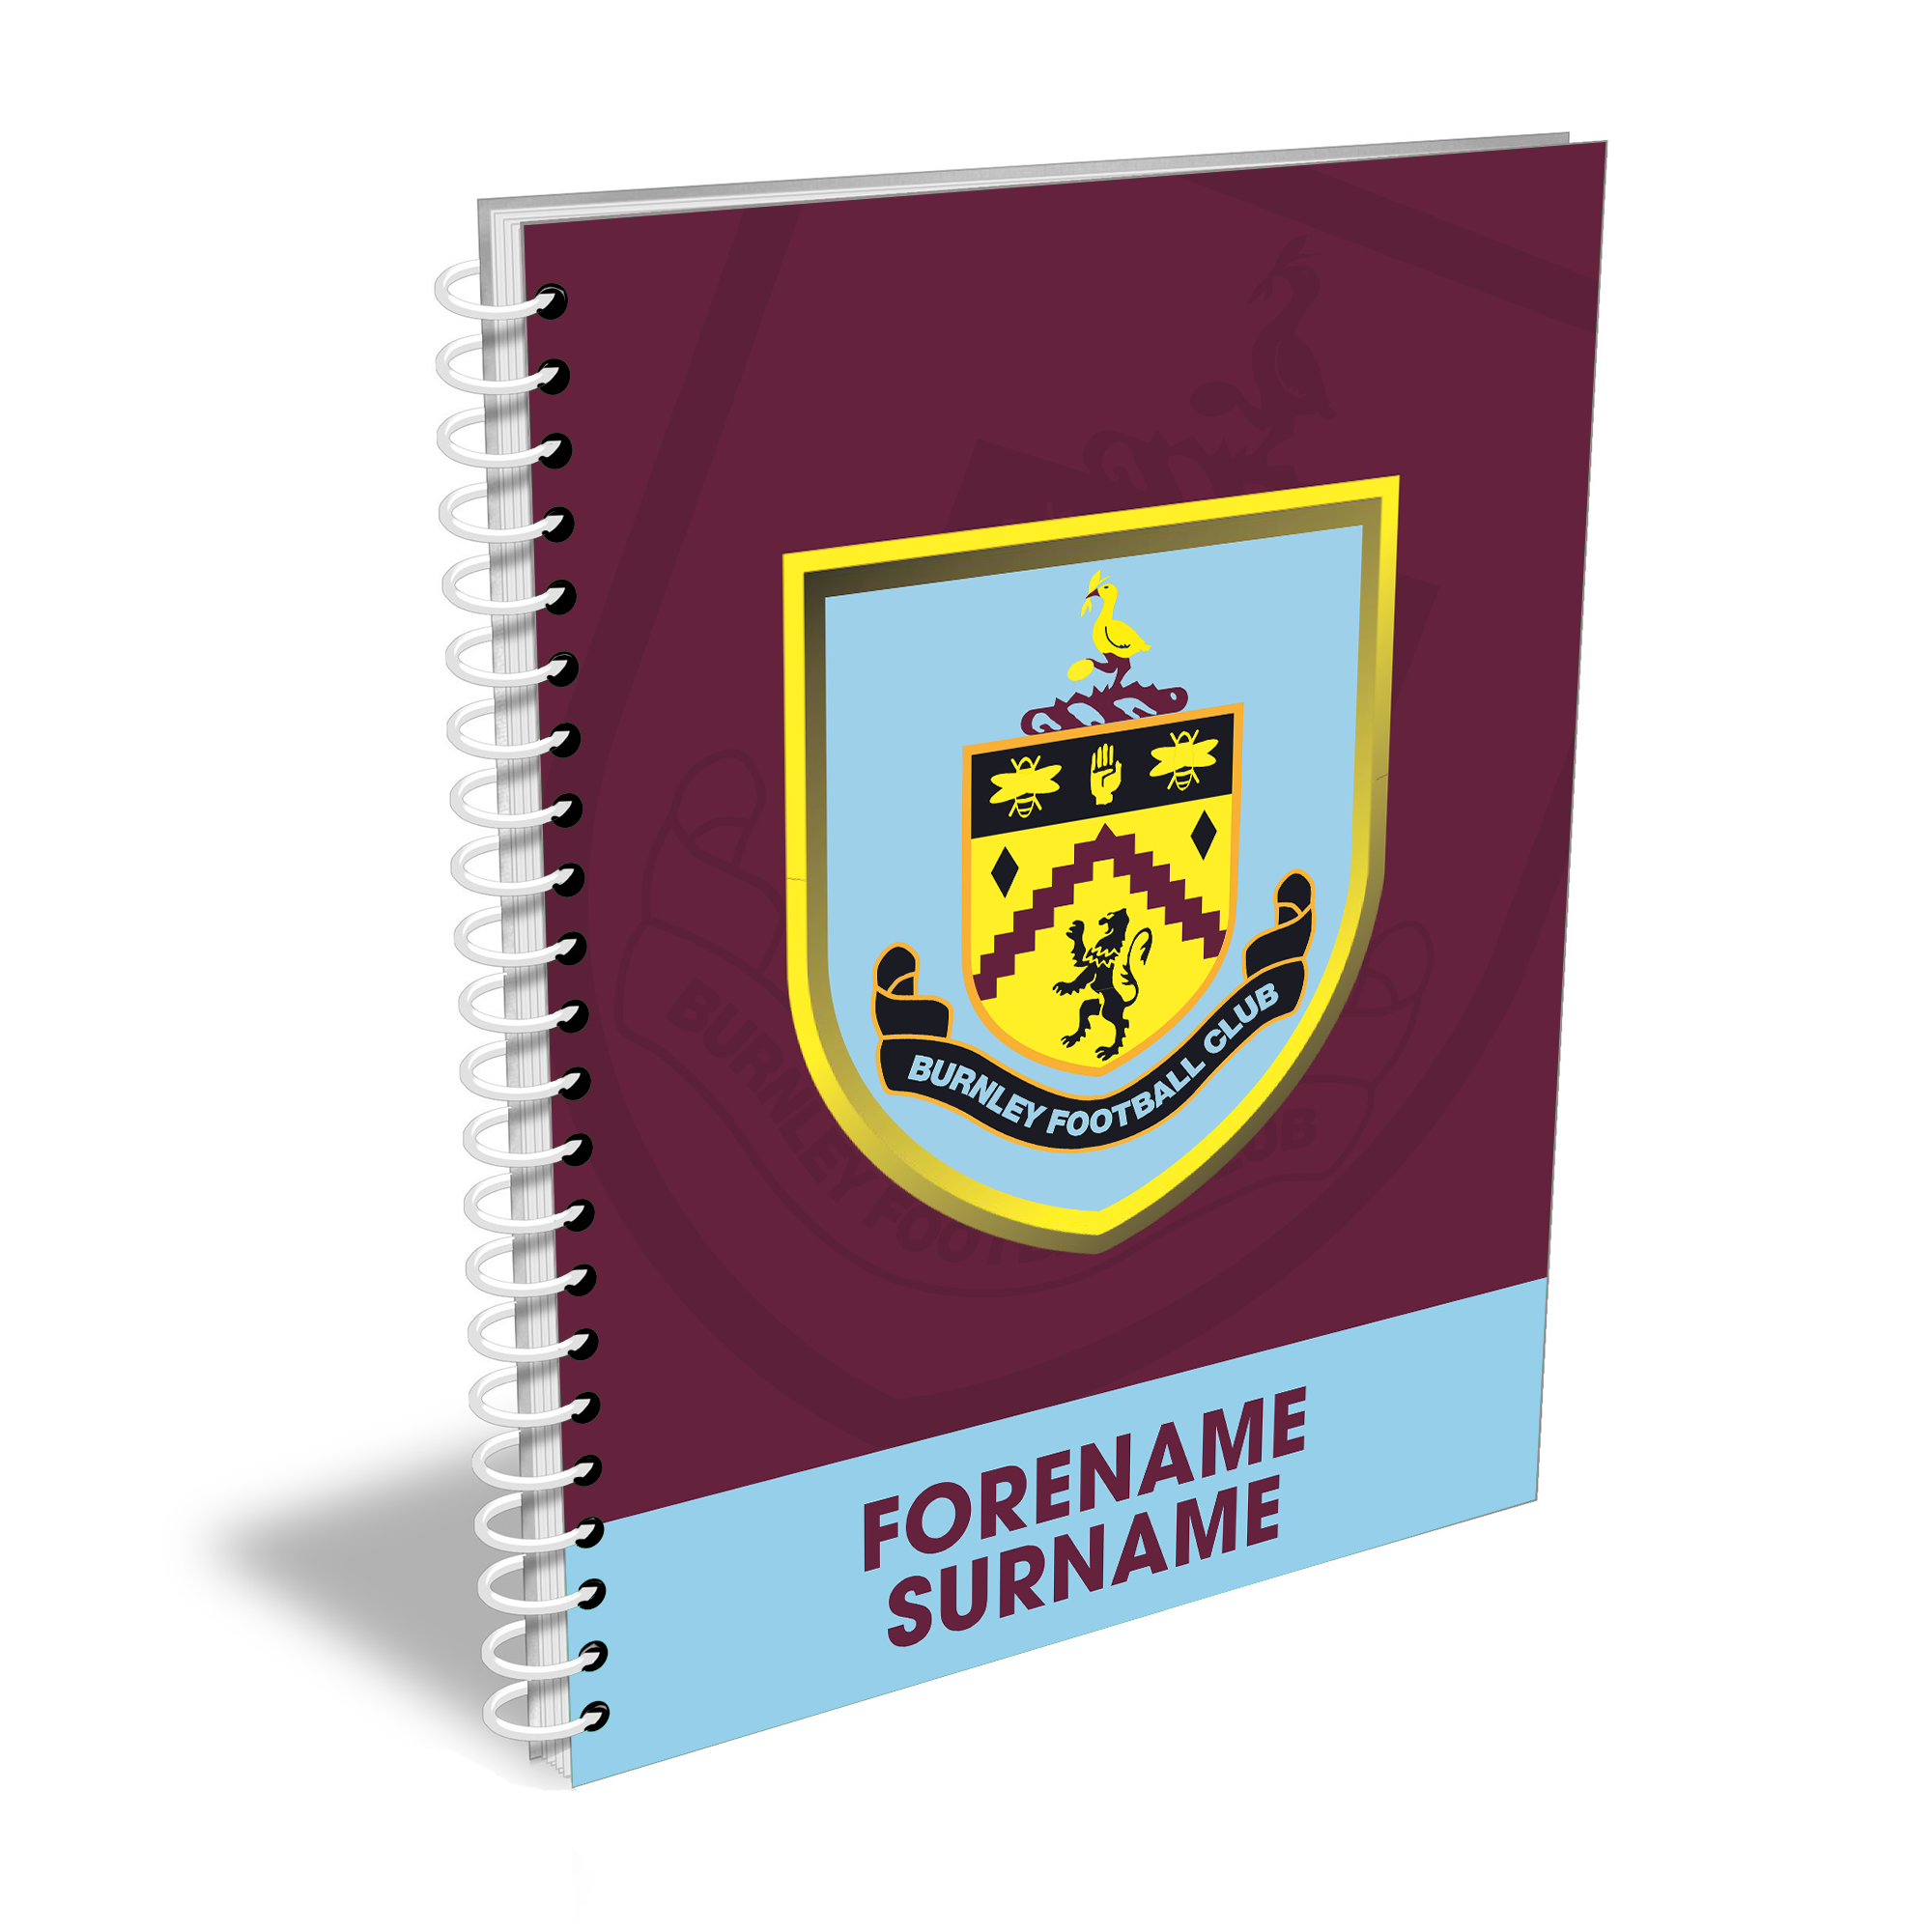 Burnley FC Bold Crest Notebook